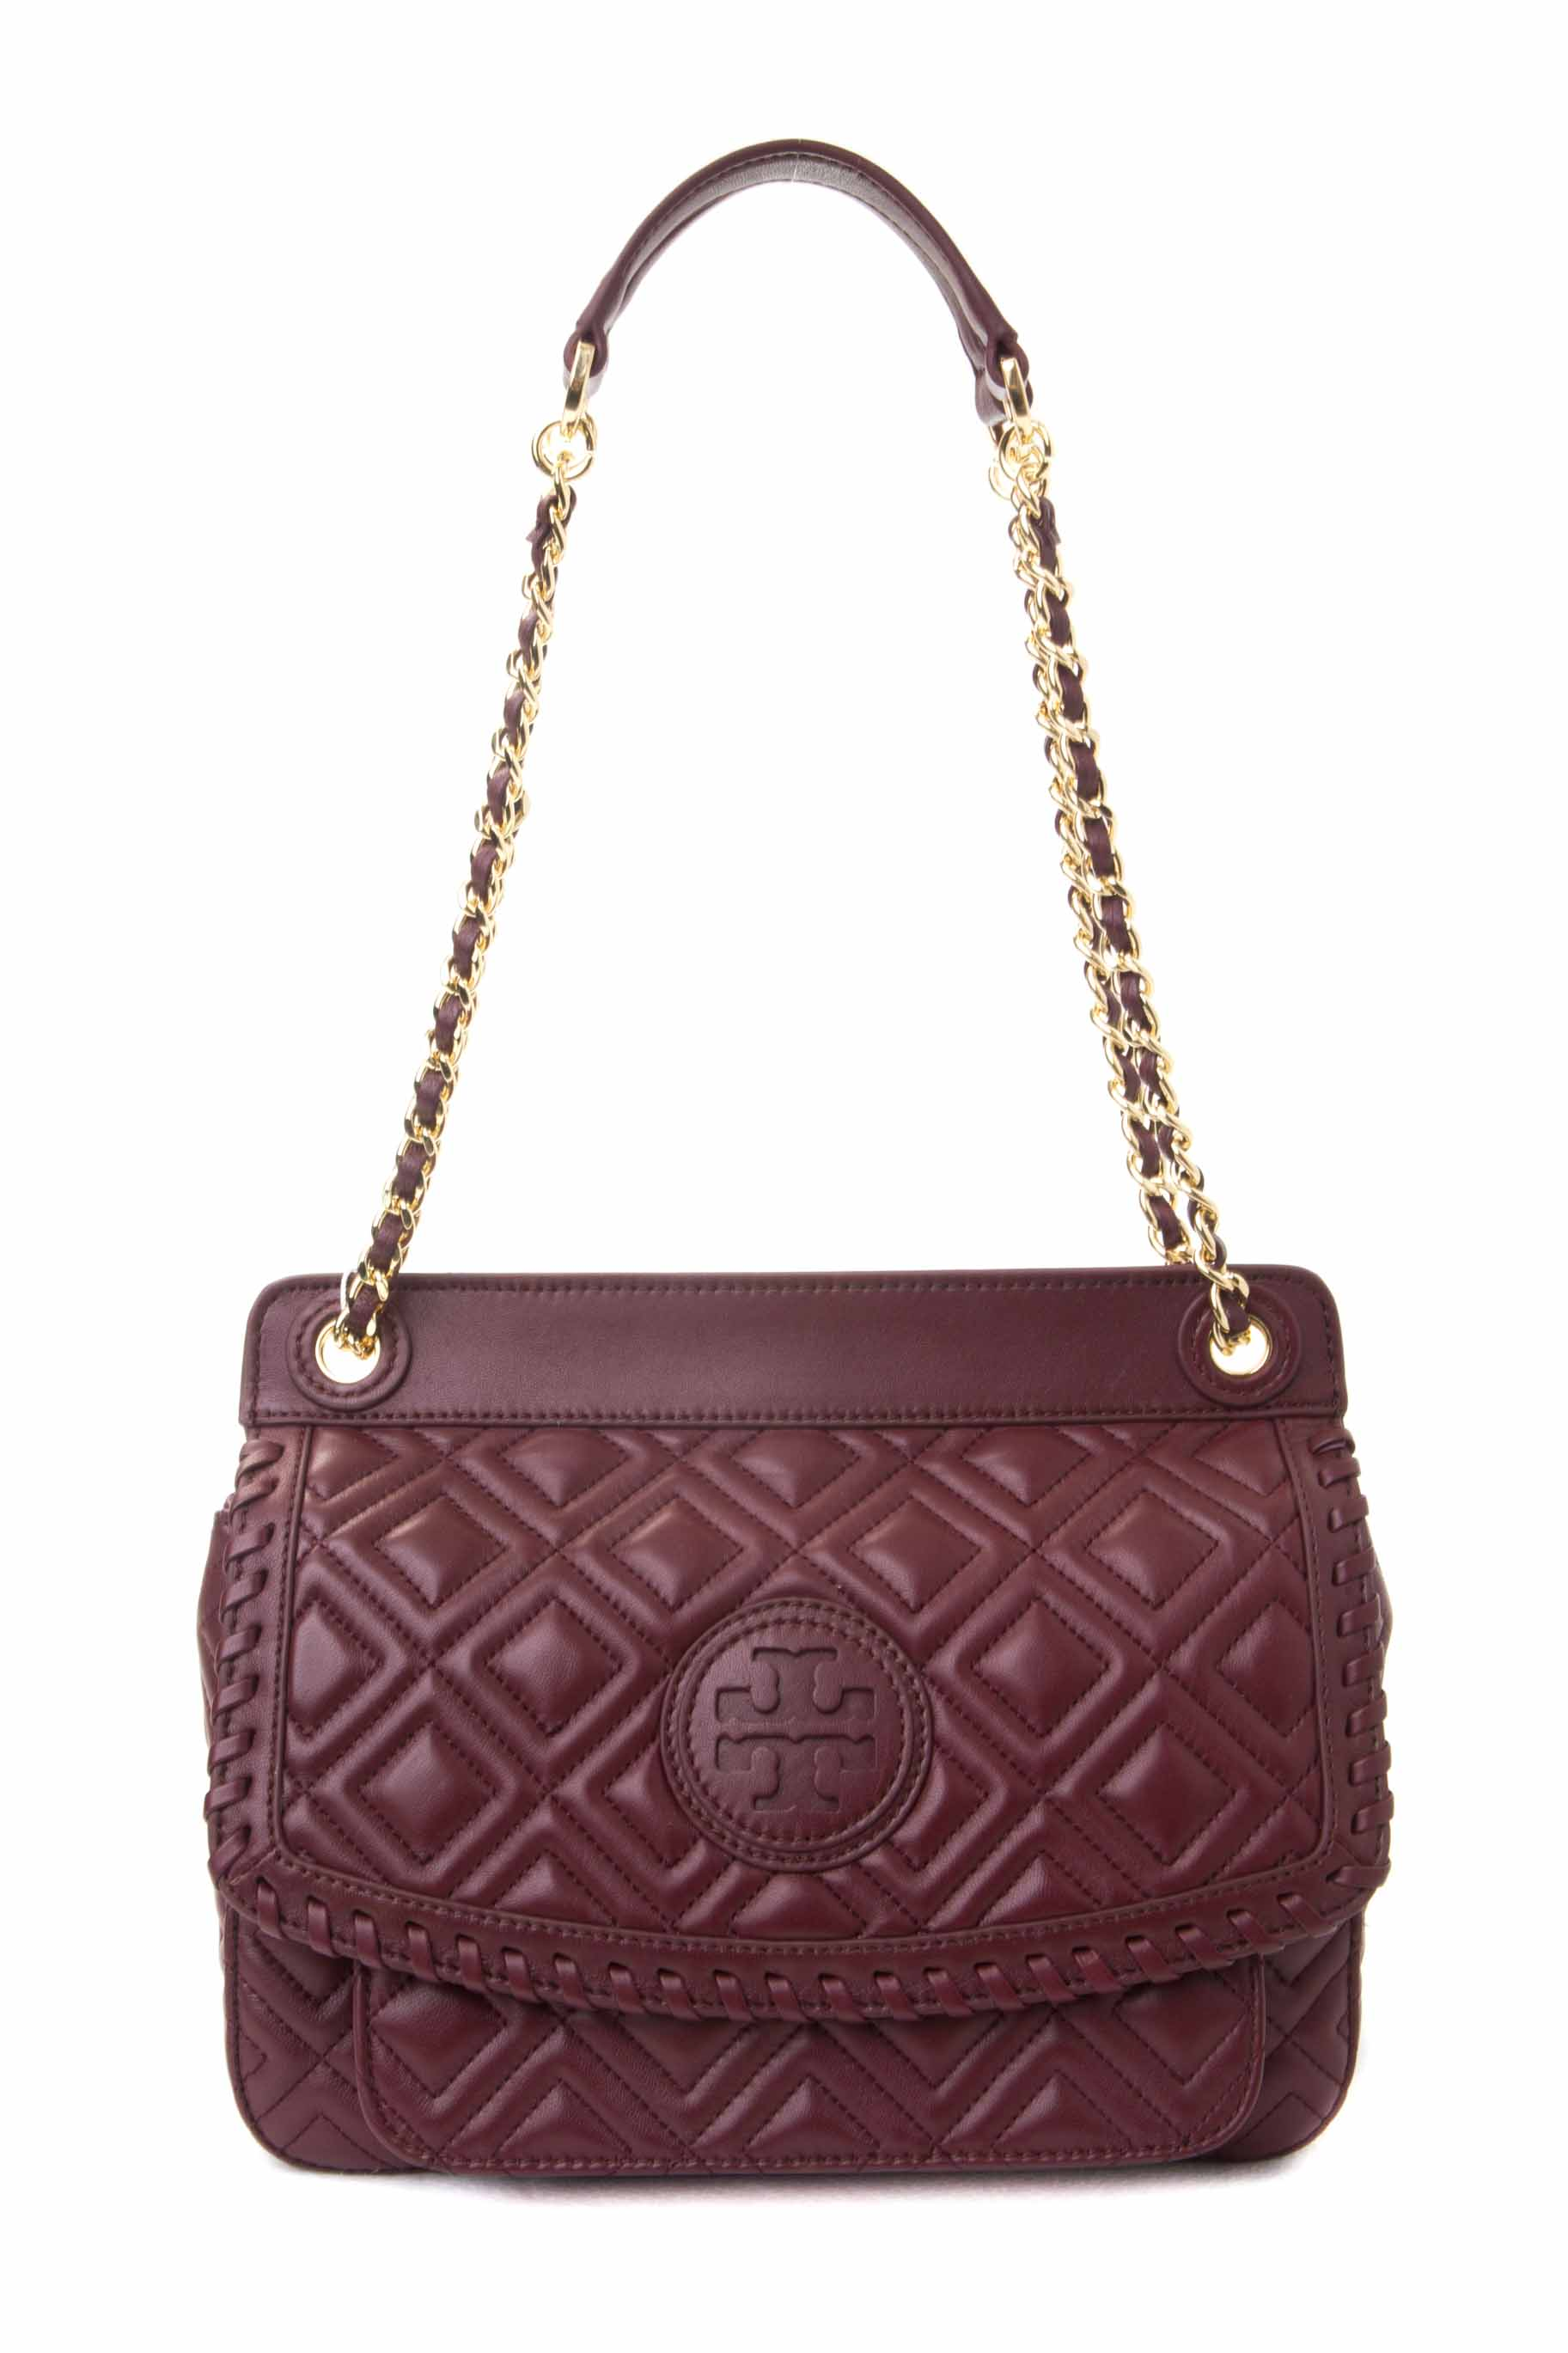 d0530daa1de Tory Burch Marion Quilted Tote Review - Best Quilt Grafimage.co